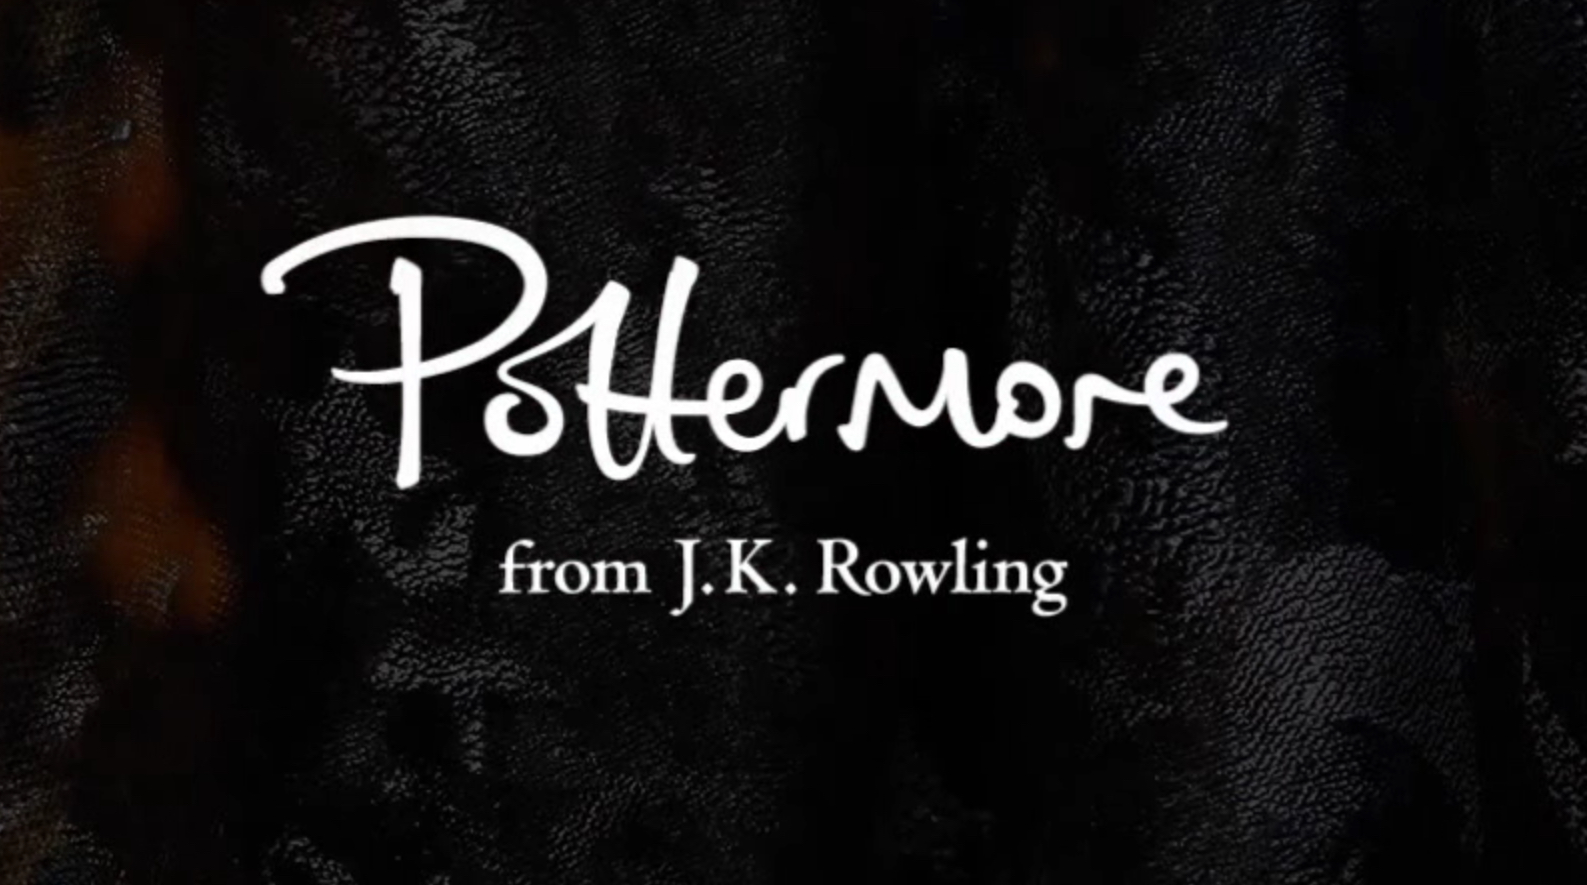 Pottermore.com from J.K. Rowling